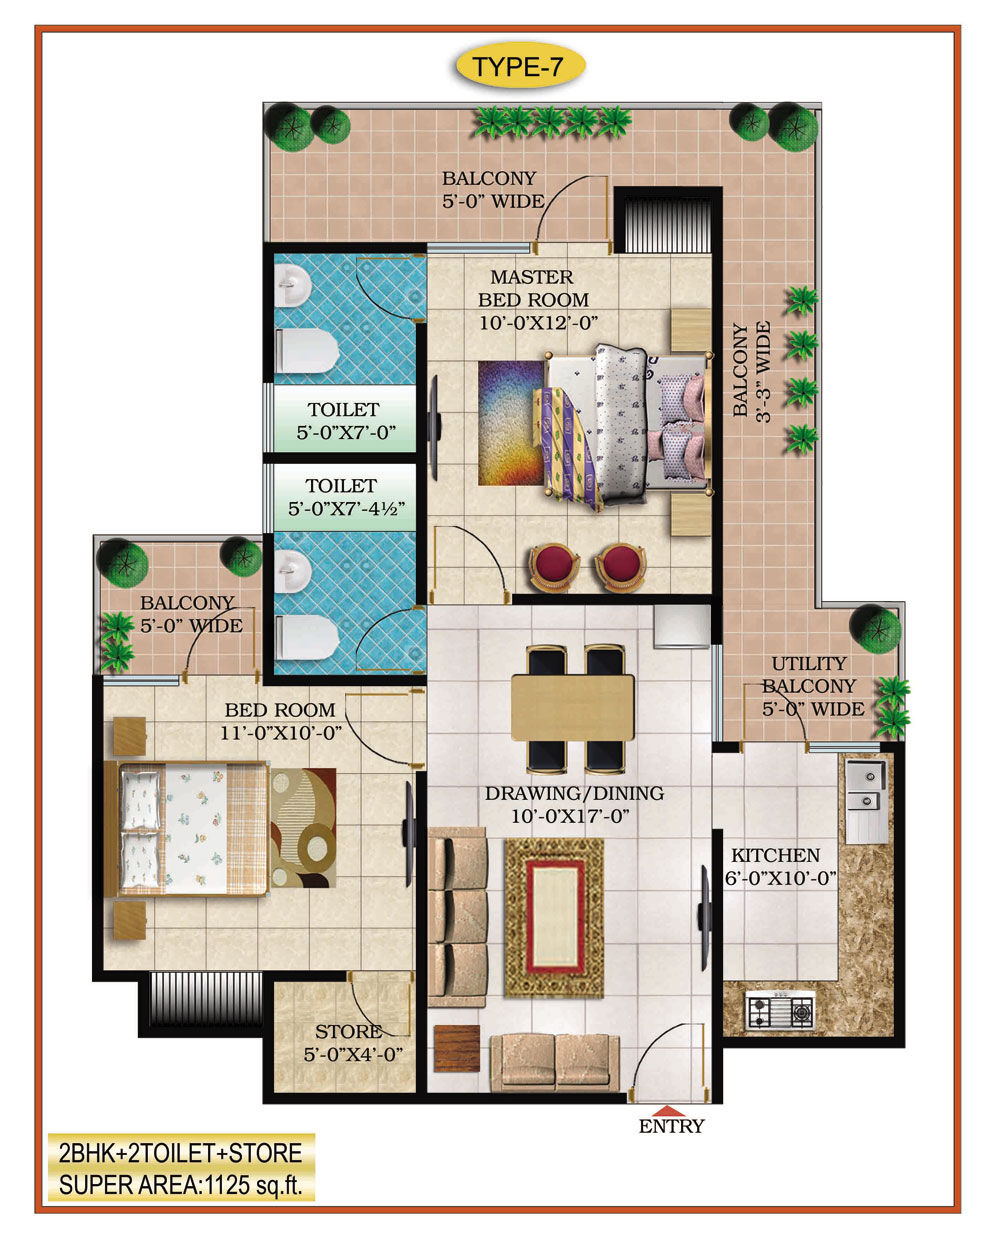 High End Group Raj Nagar Extension floor plan 995 sq. ft.